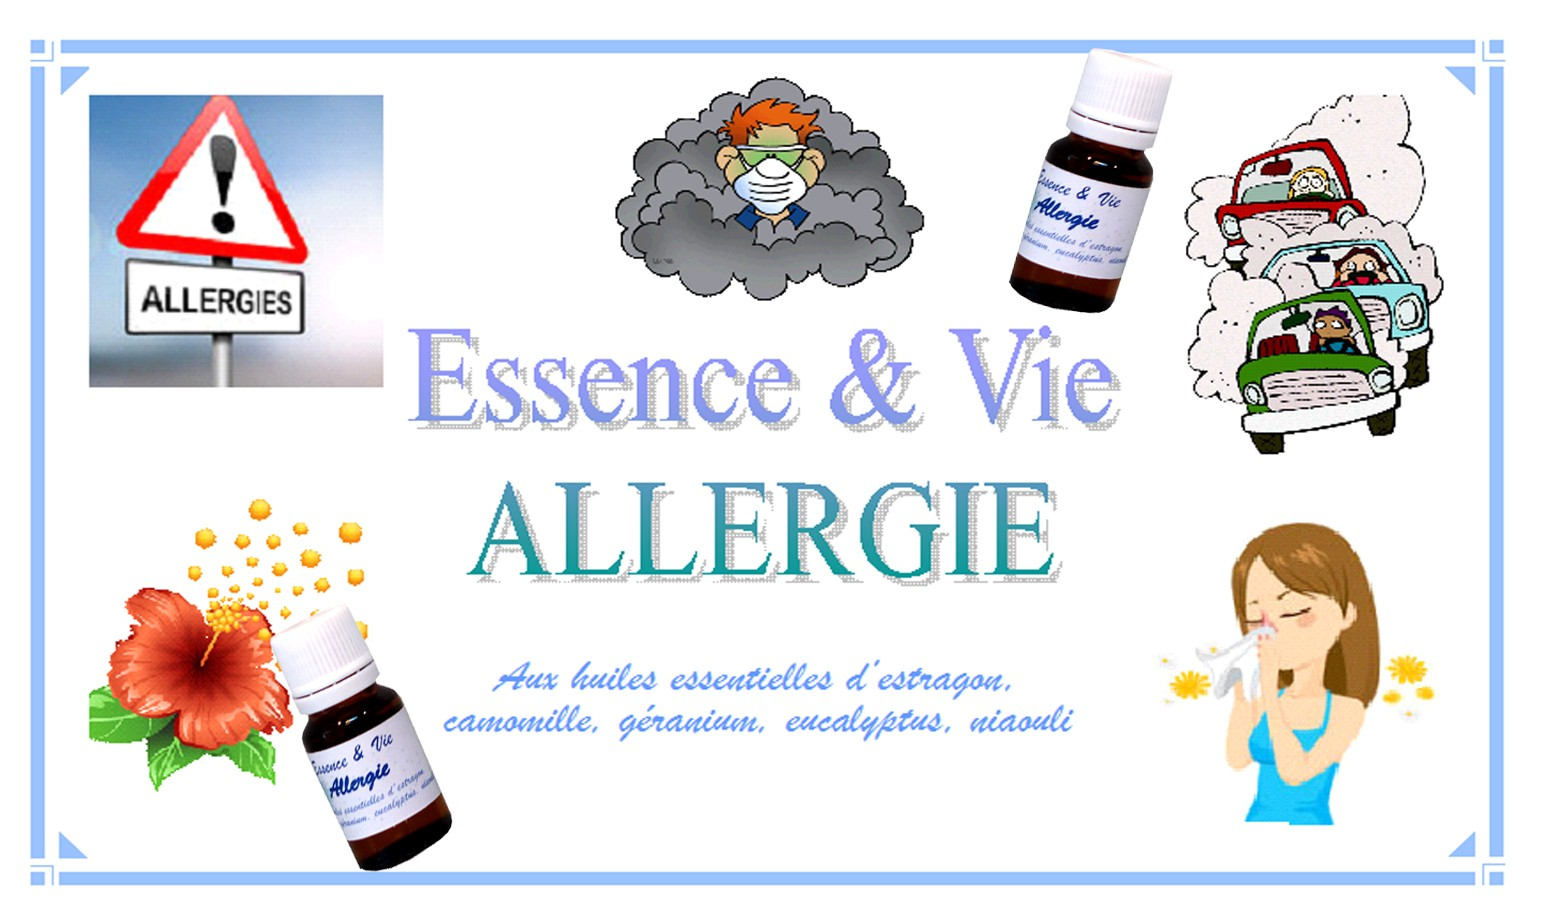 Essence & Vie - Allergie